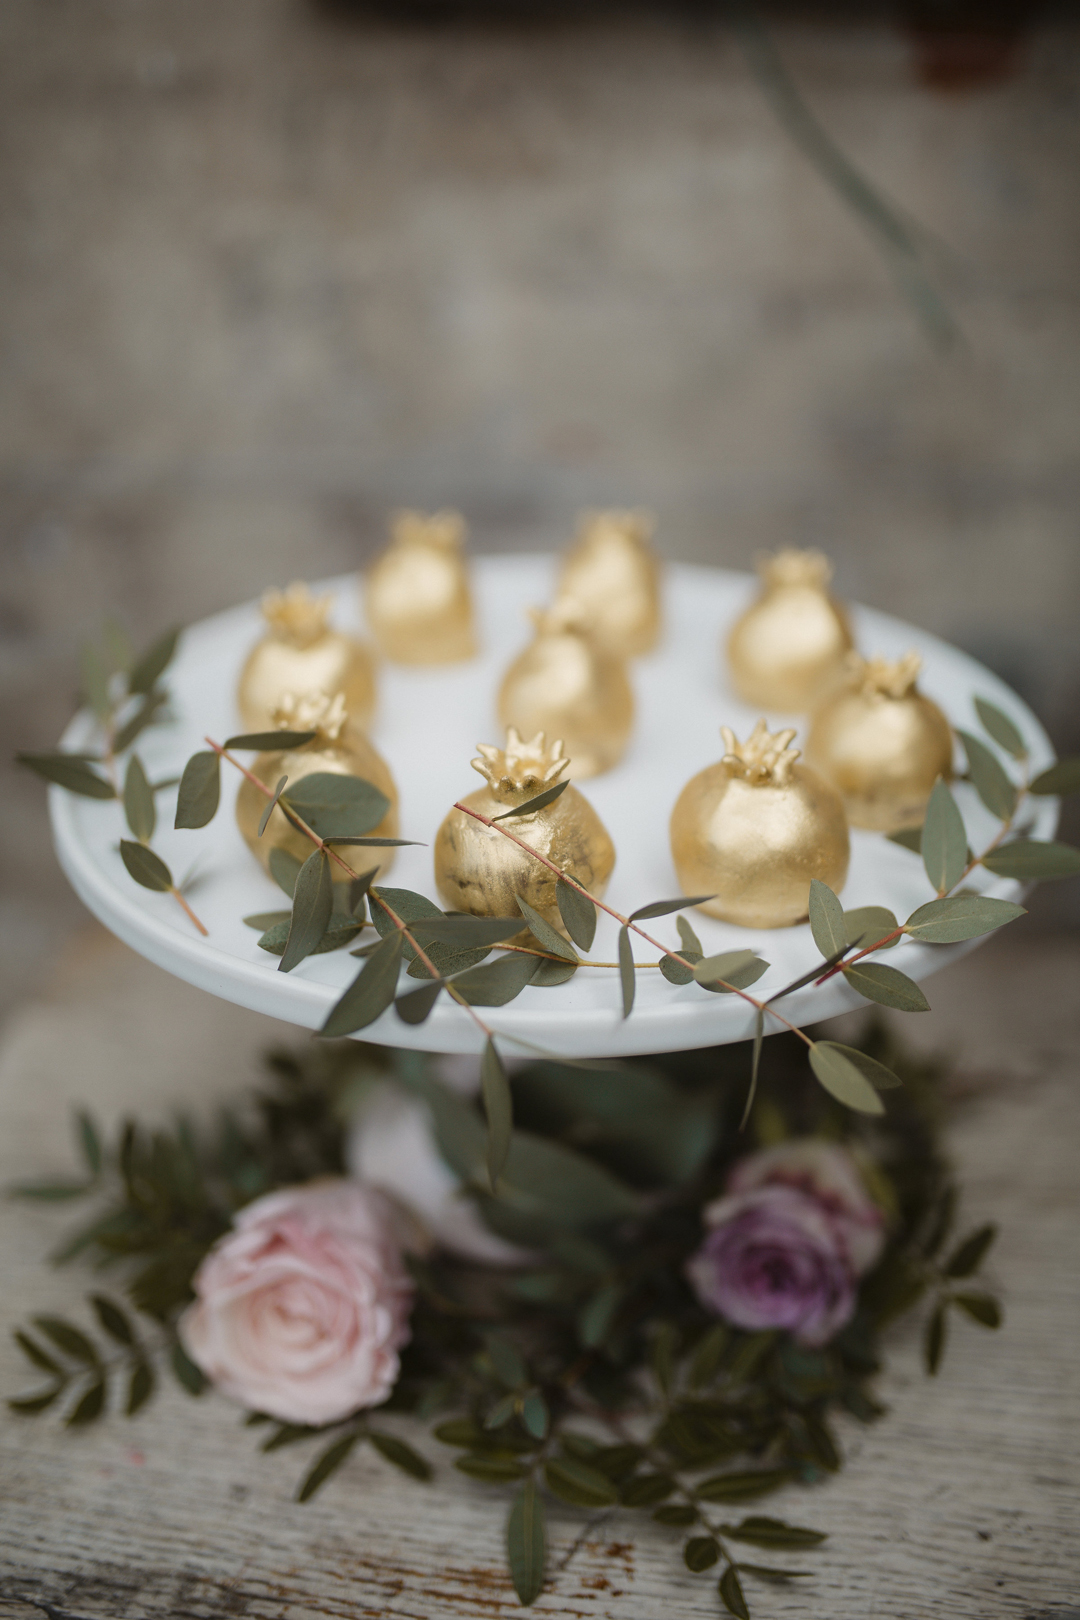 Golden pomegranate cake truffles